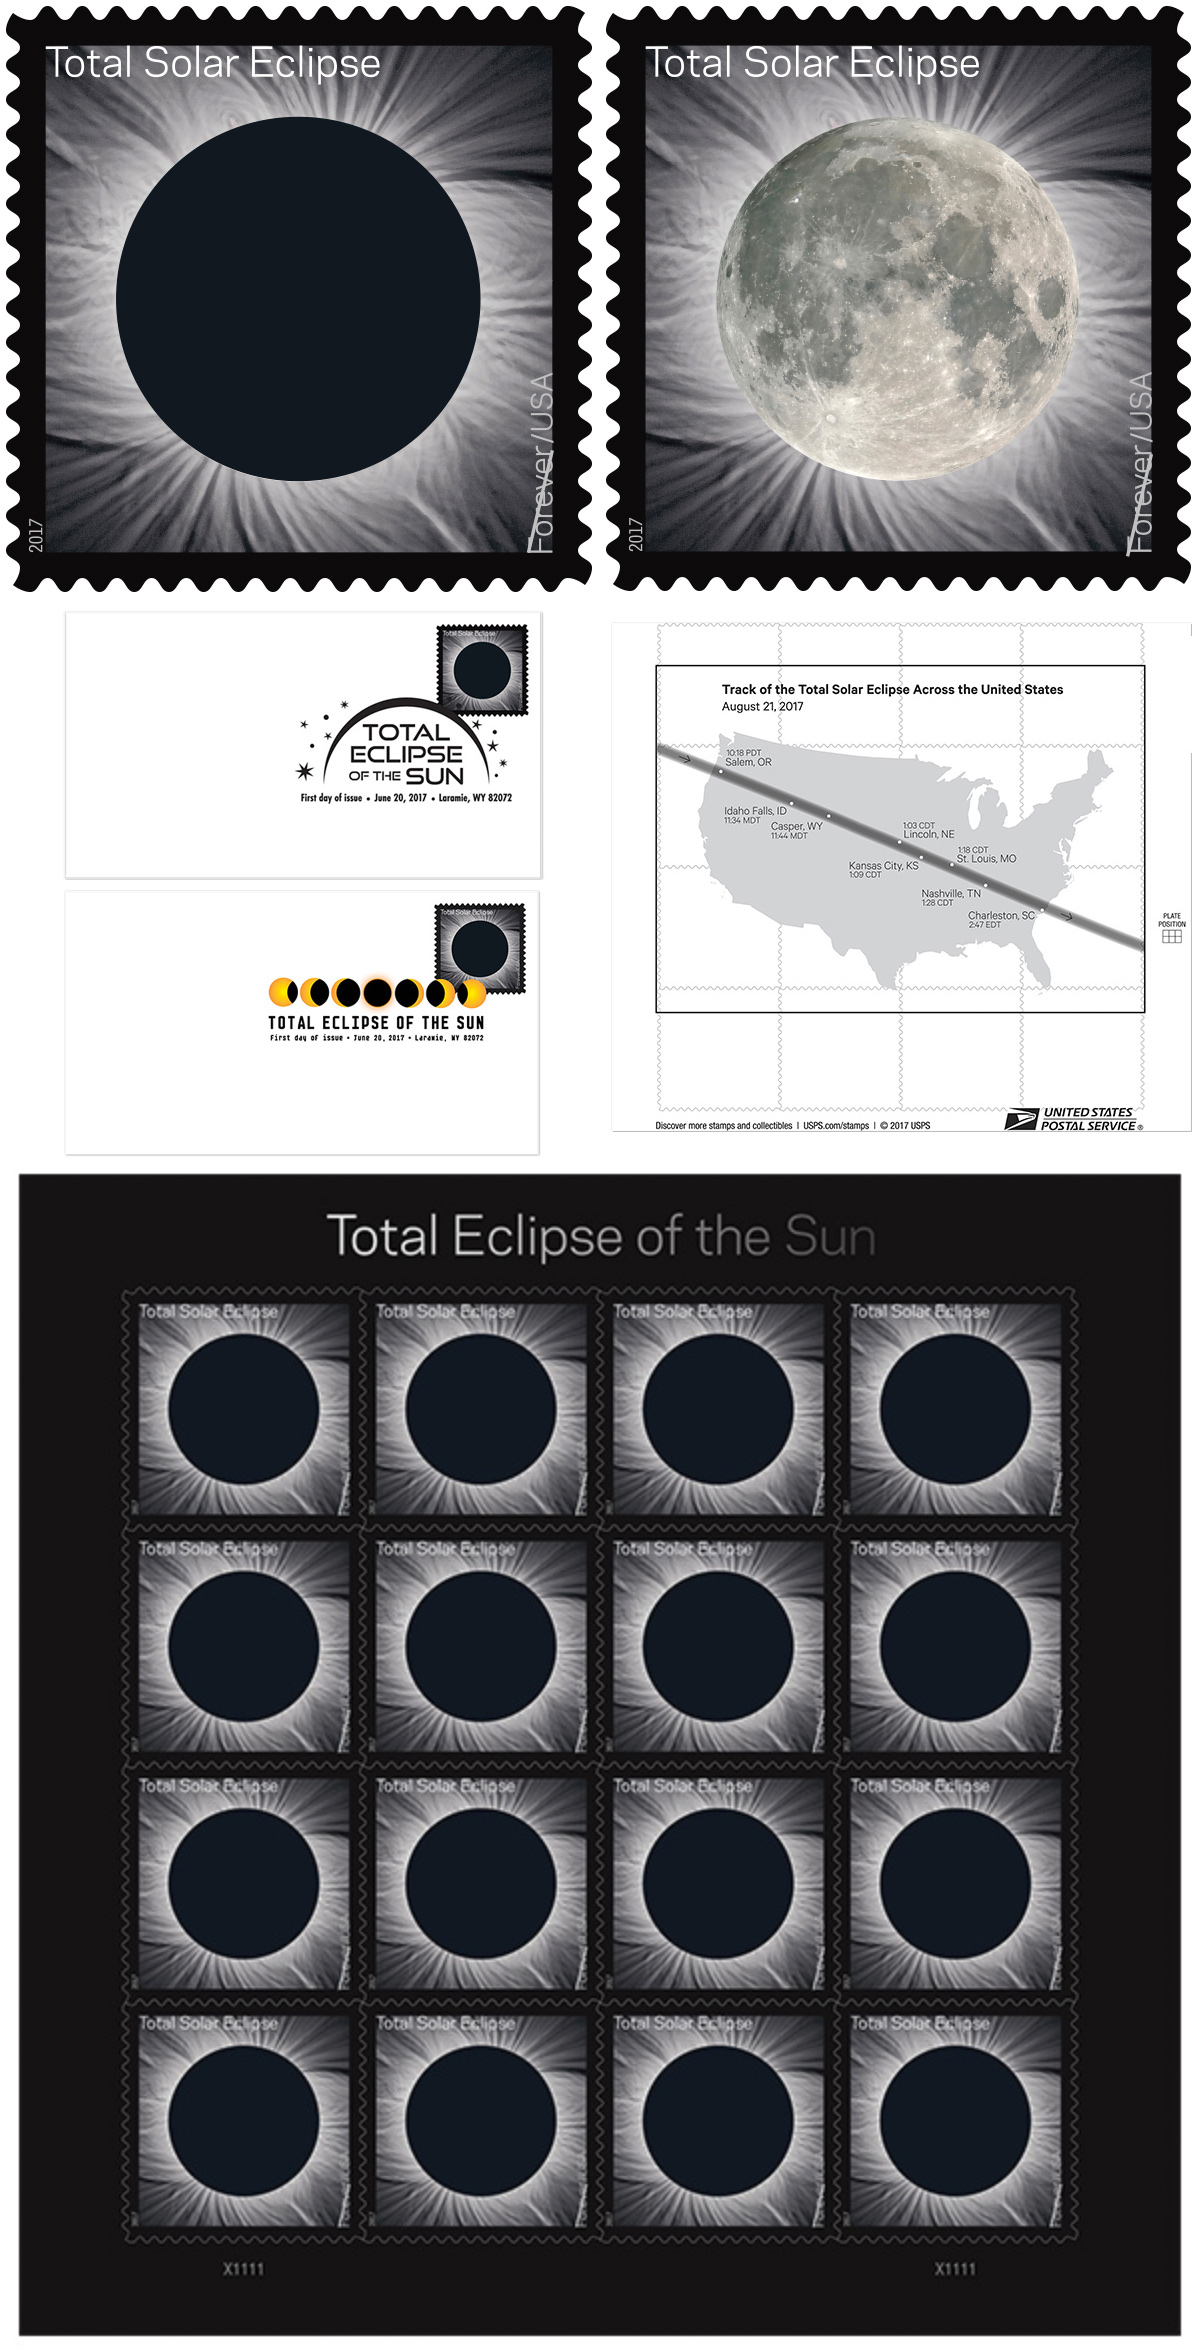 eclipse-other5.jpg